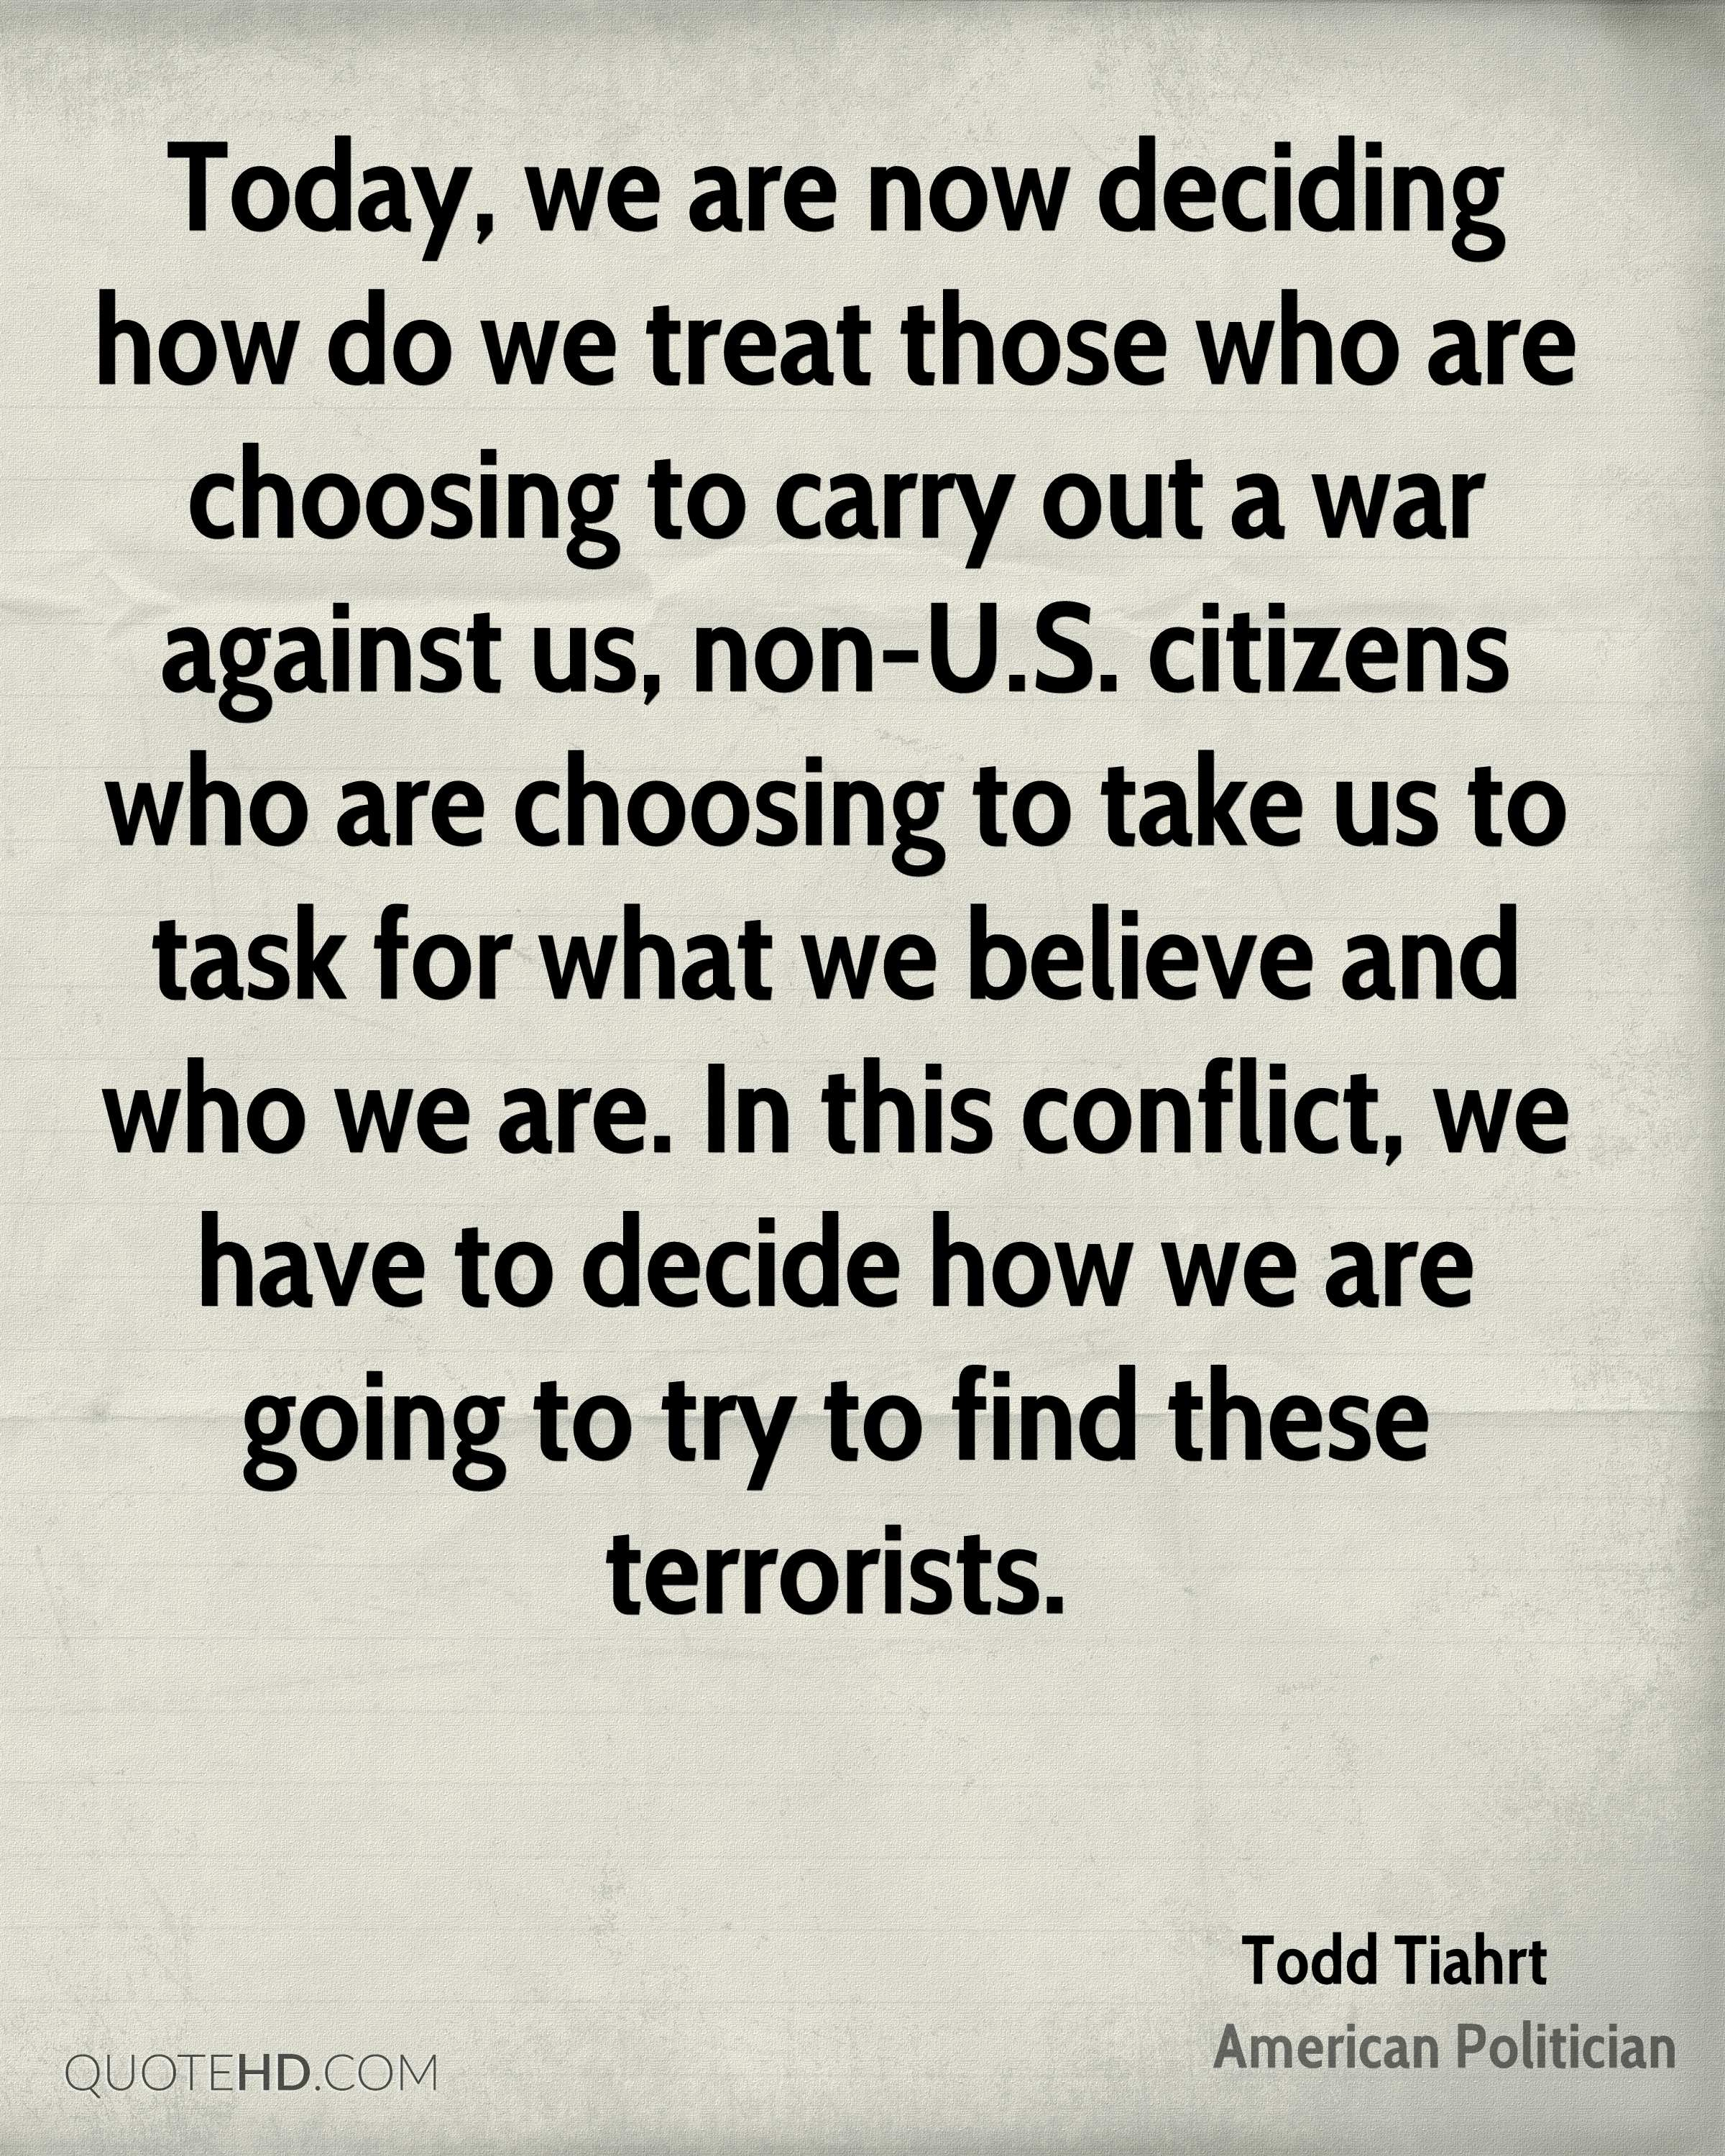 Today, we are now deciding how do we treat those who are choosing to carry out a war against us, non-U.S. citizens who are choosing to take us to task for what we believe and who we are. In this conflict, we have to decide how we are going to try to find these terrorists.